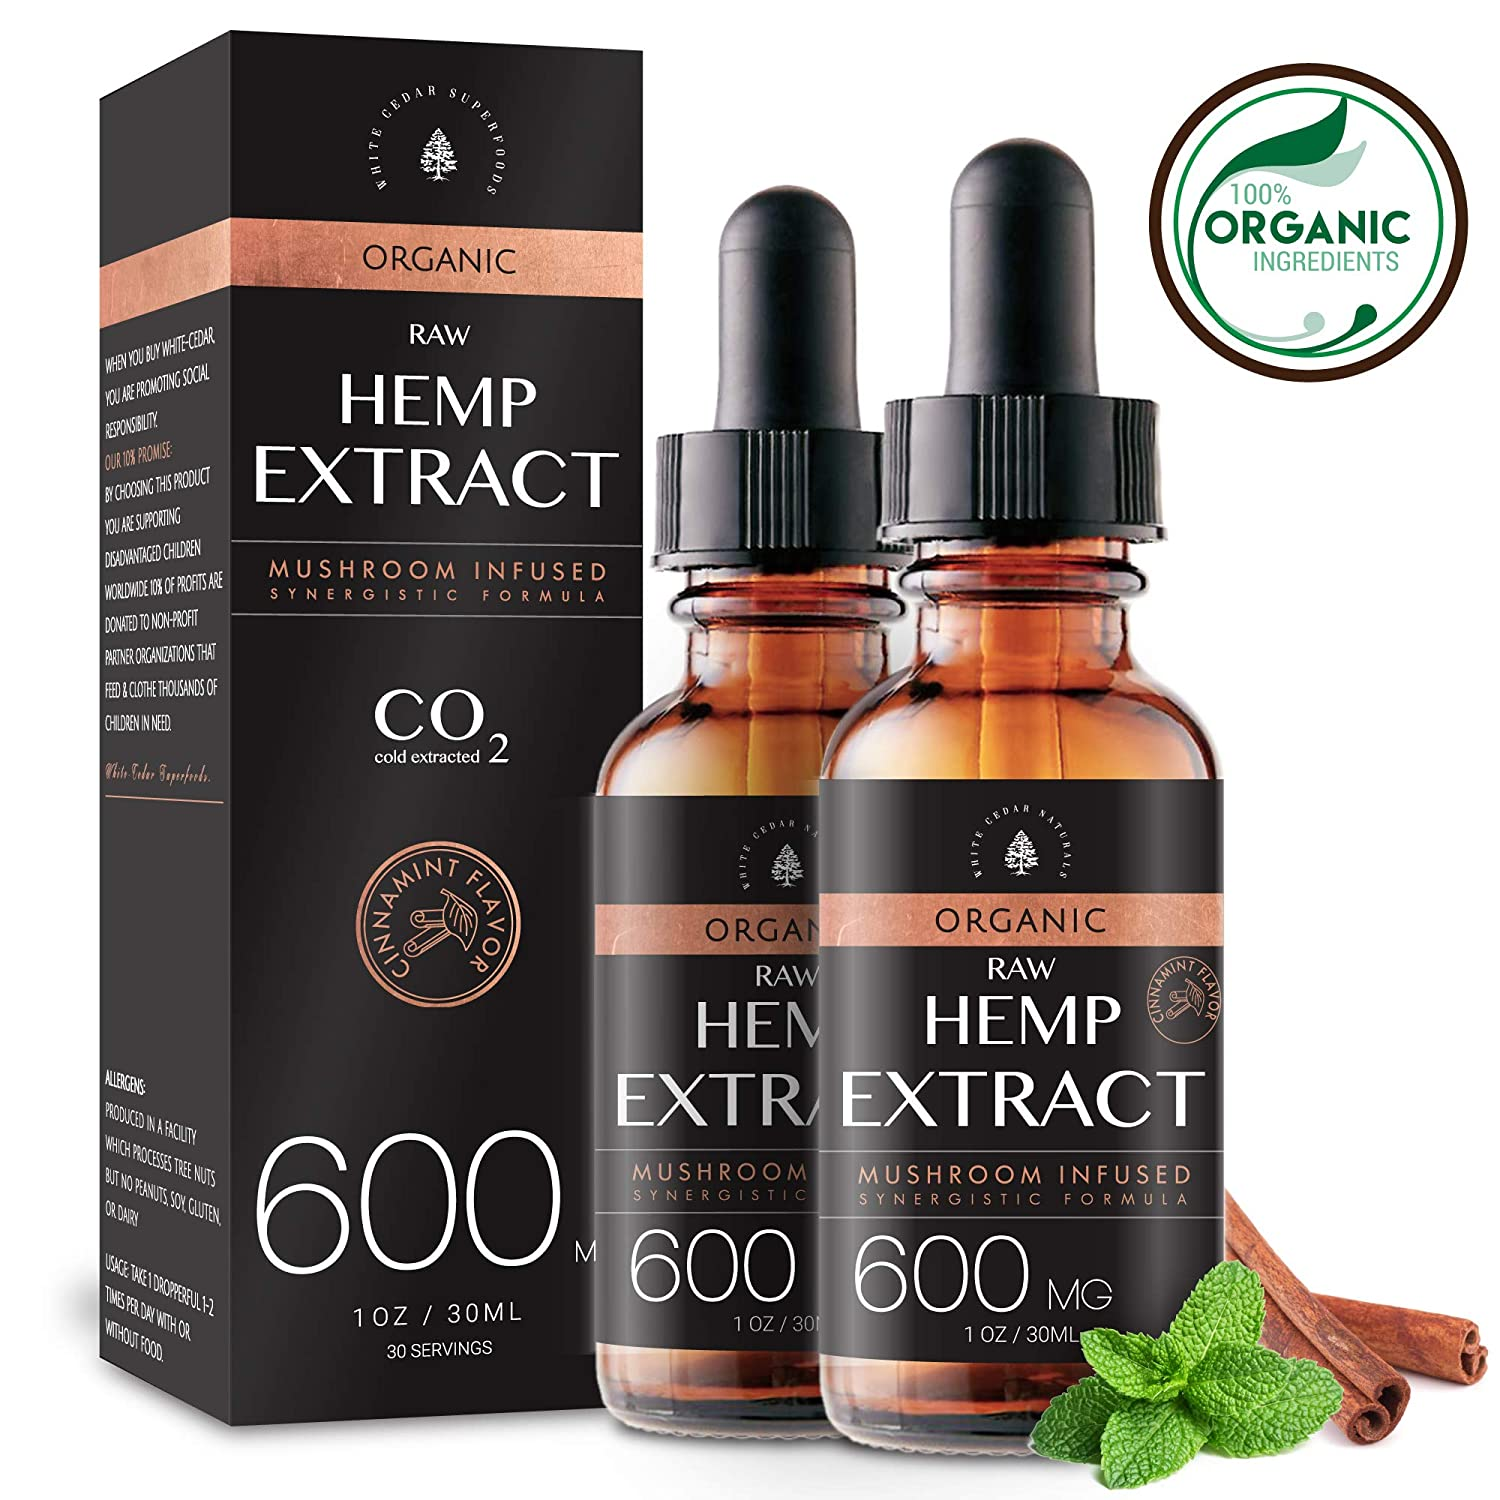 (2-Pack) Organic Raw Hemp Oil Extract - 600MG - Cinnamint Flavor - Enhanced Efficacy, Made in USA - Rich in Omega 3-6-9 Fatty Acids, Kosher, Non-GMO. White Cedar Natural